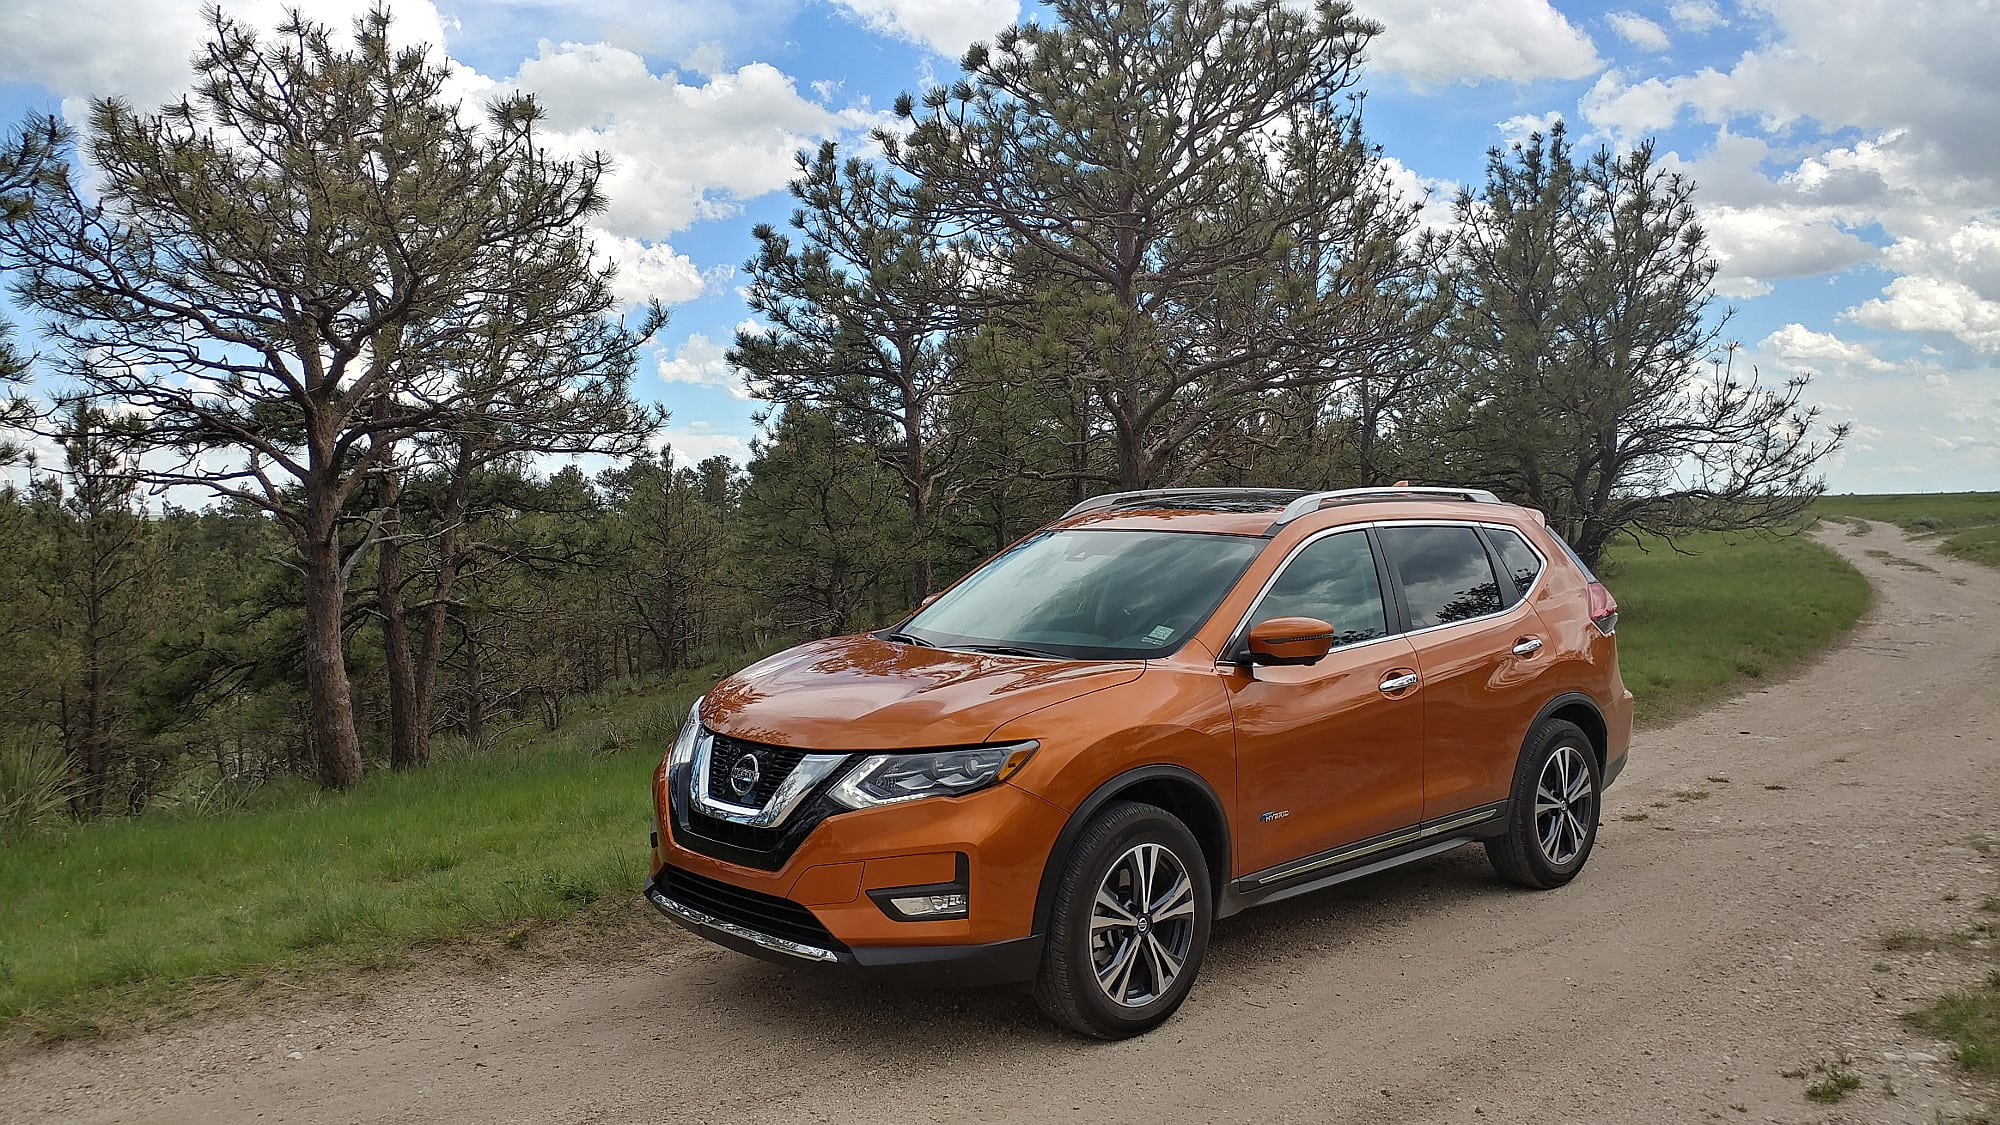 2017 Nissan Rogue Hybrid Brings Hybrid Efficiency to the Best-Selling Nissan